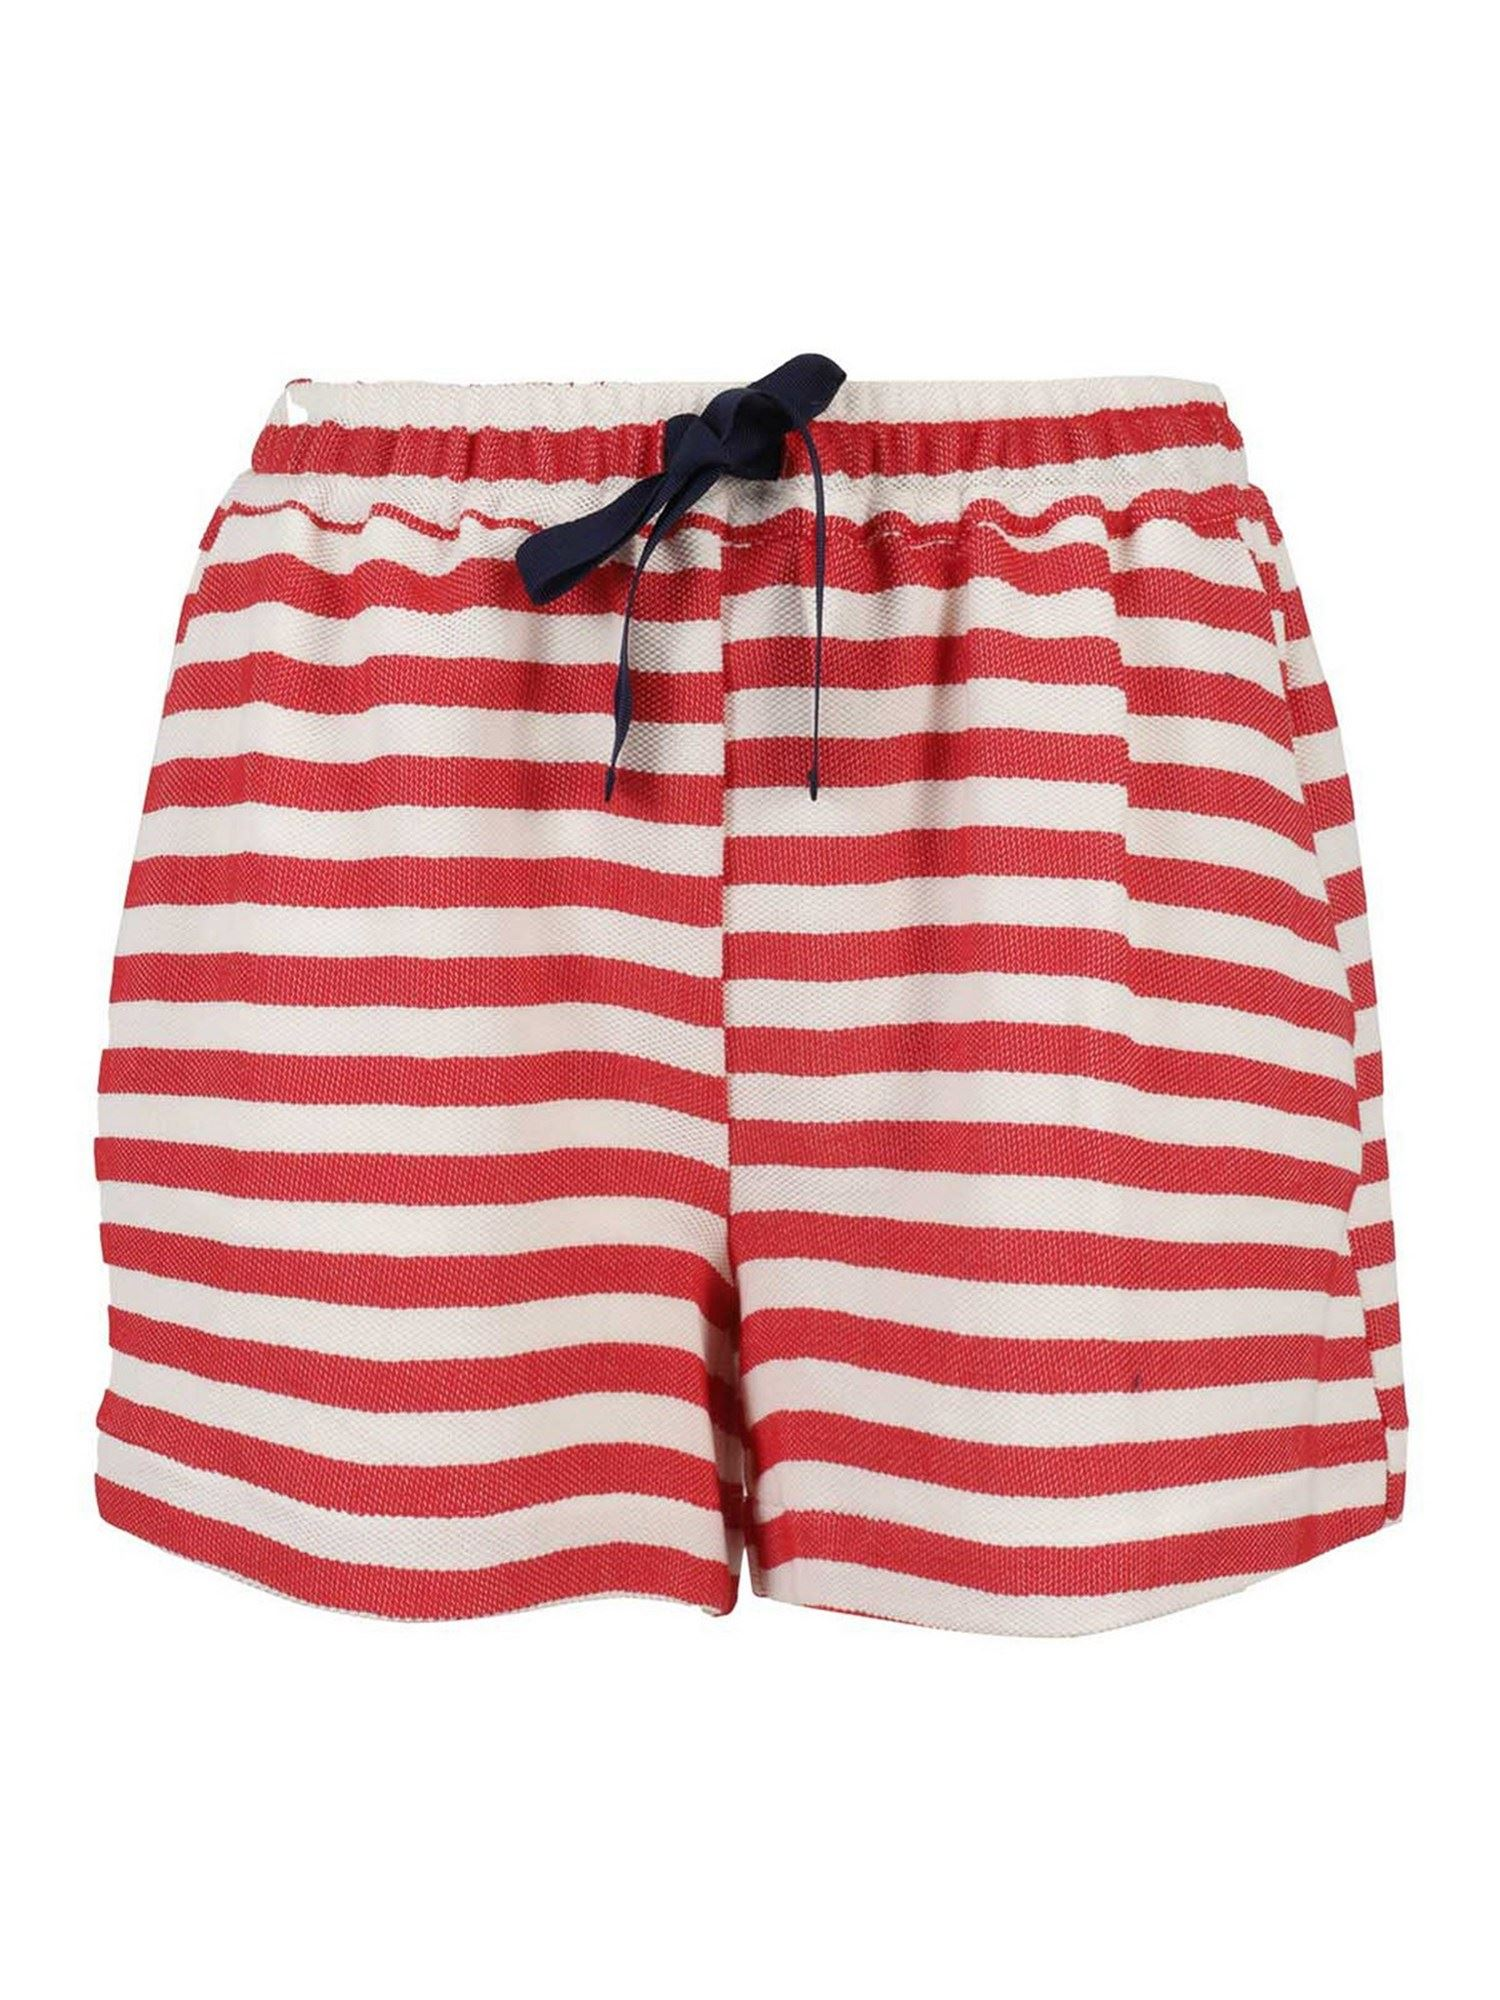 Semicouture EVELYNE SHORTS IN RED AND WHITE